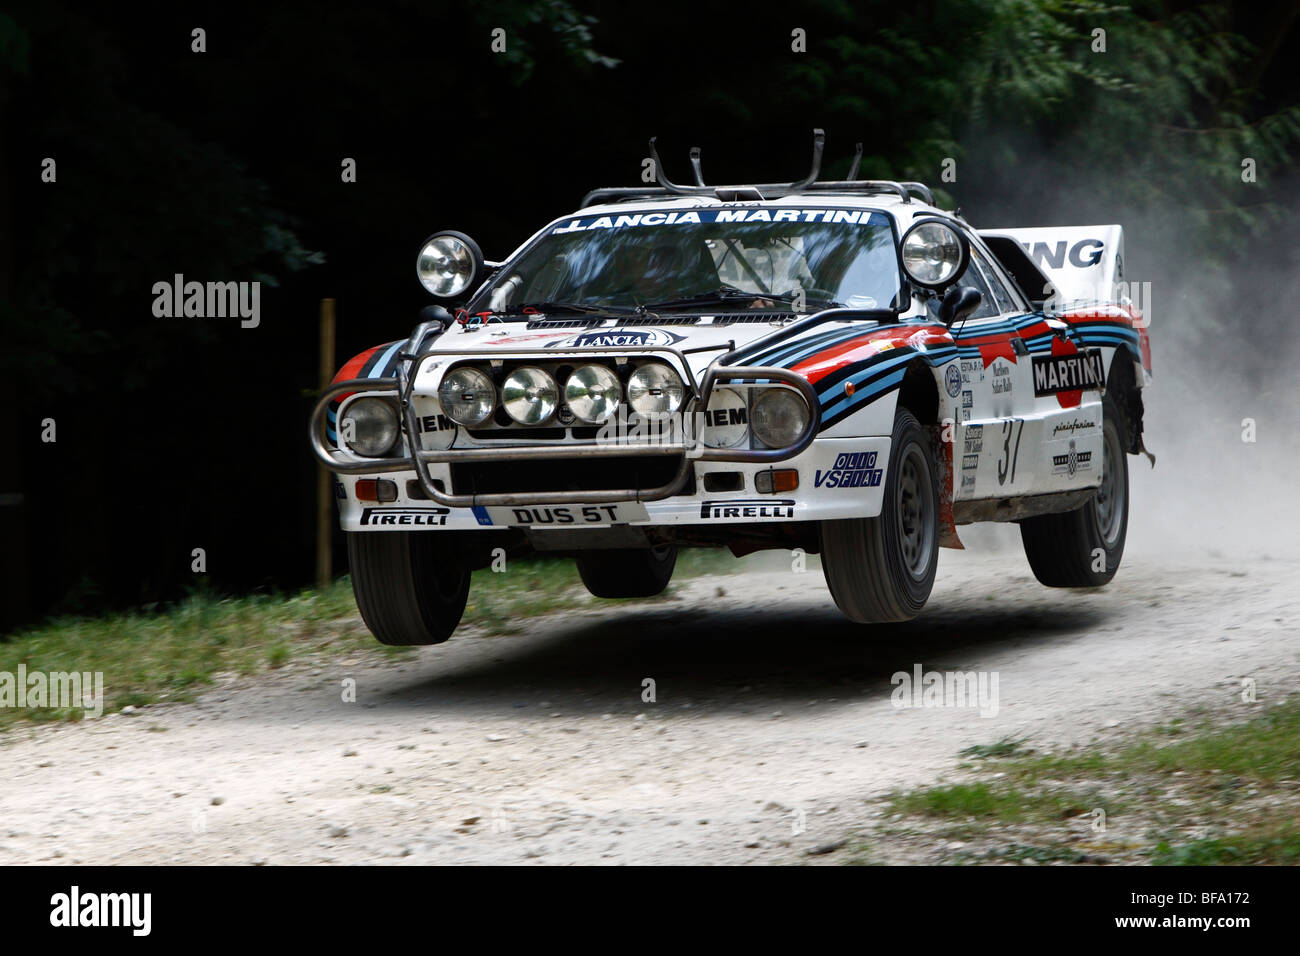 Lancia Rallye 037  Driven By David Kedward on the rally stage at Goodwood Festival Of Speed 2009 - Stock Image